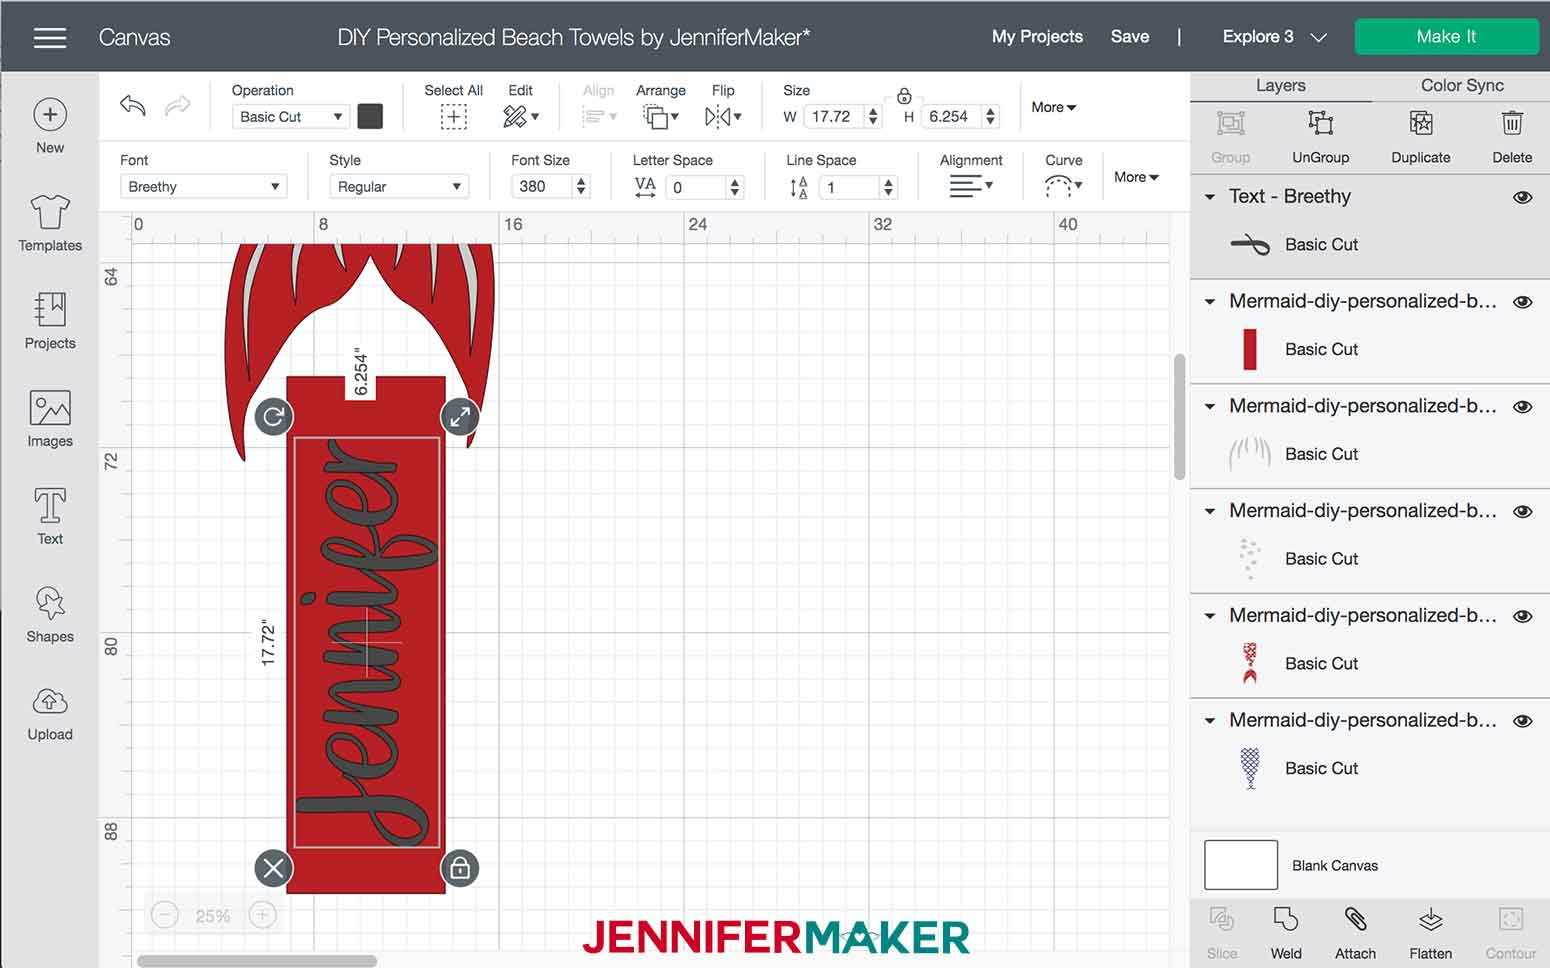 Sizing and placing text in Design Space for the Mermaid DIY Personalized Beach Towels